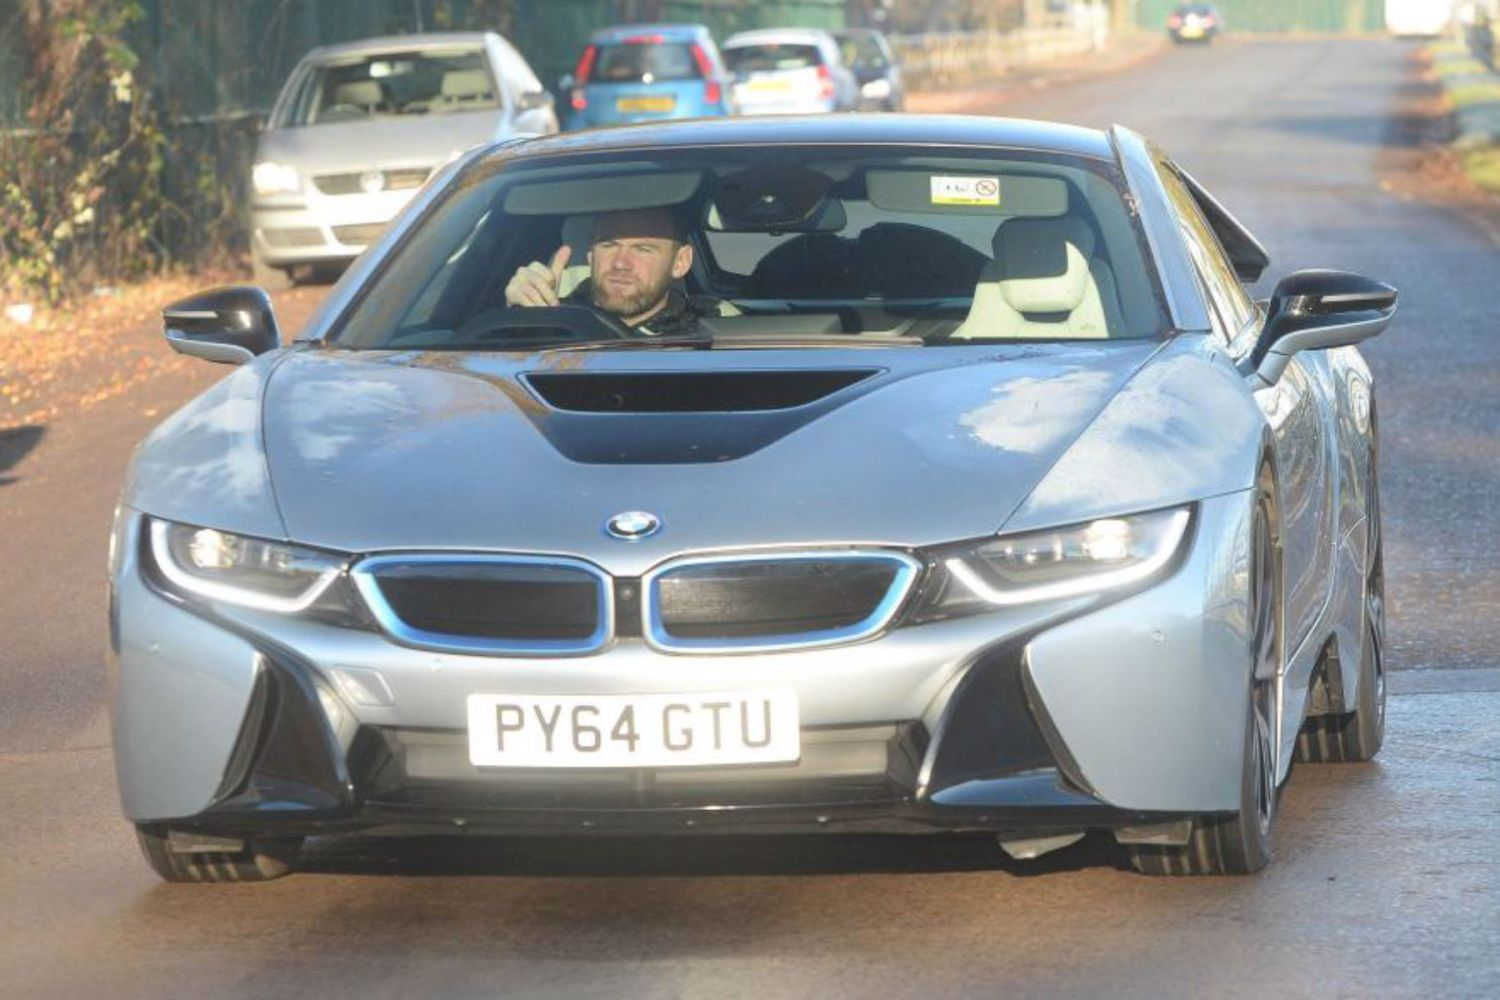 Wayne Rooney forced to flog supercar after drink-drive ban